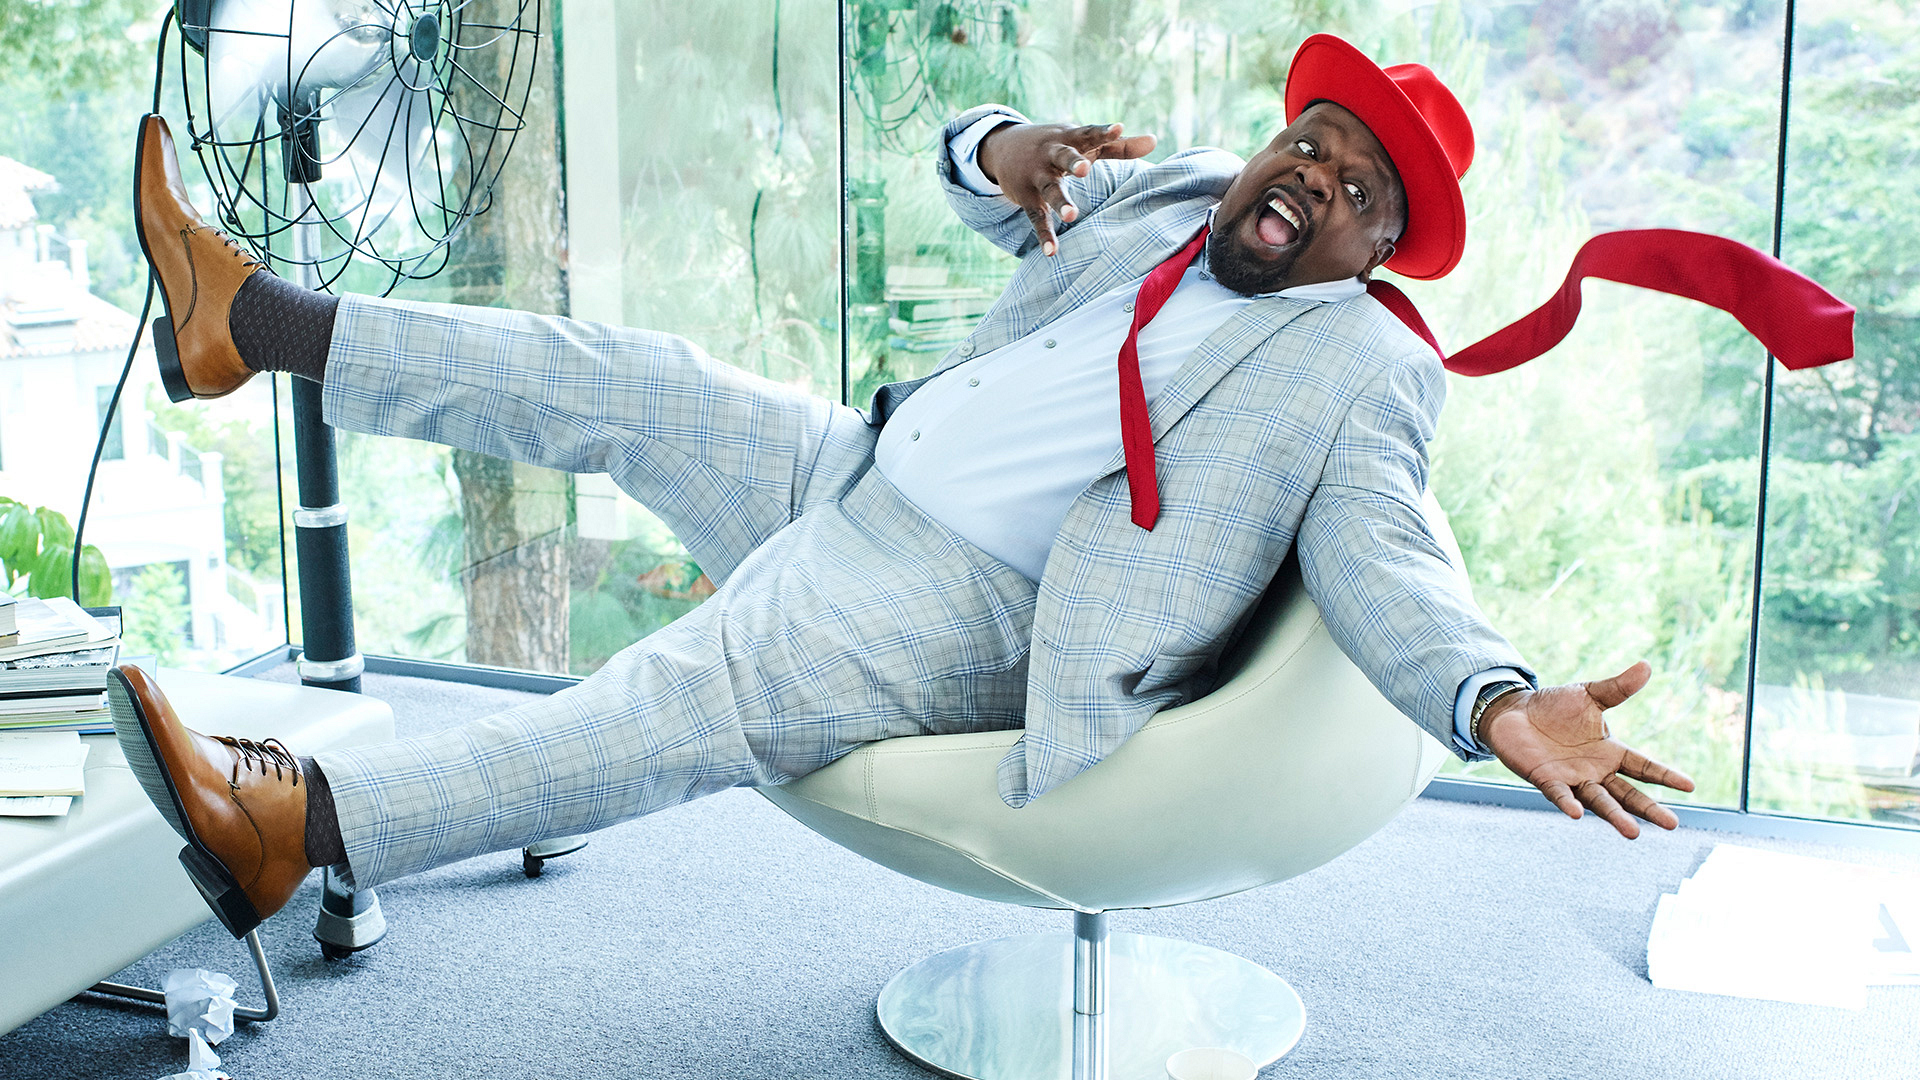 Cedric the Entertainer rules The Neighborhood—and these exclusive photos!